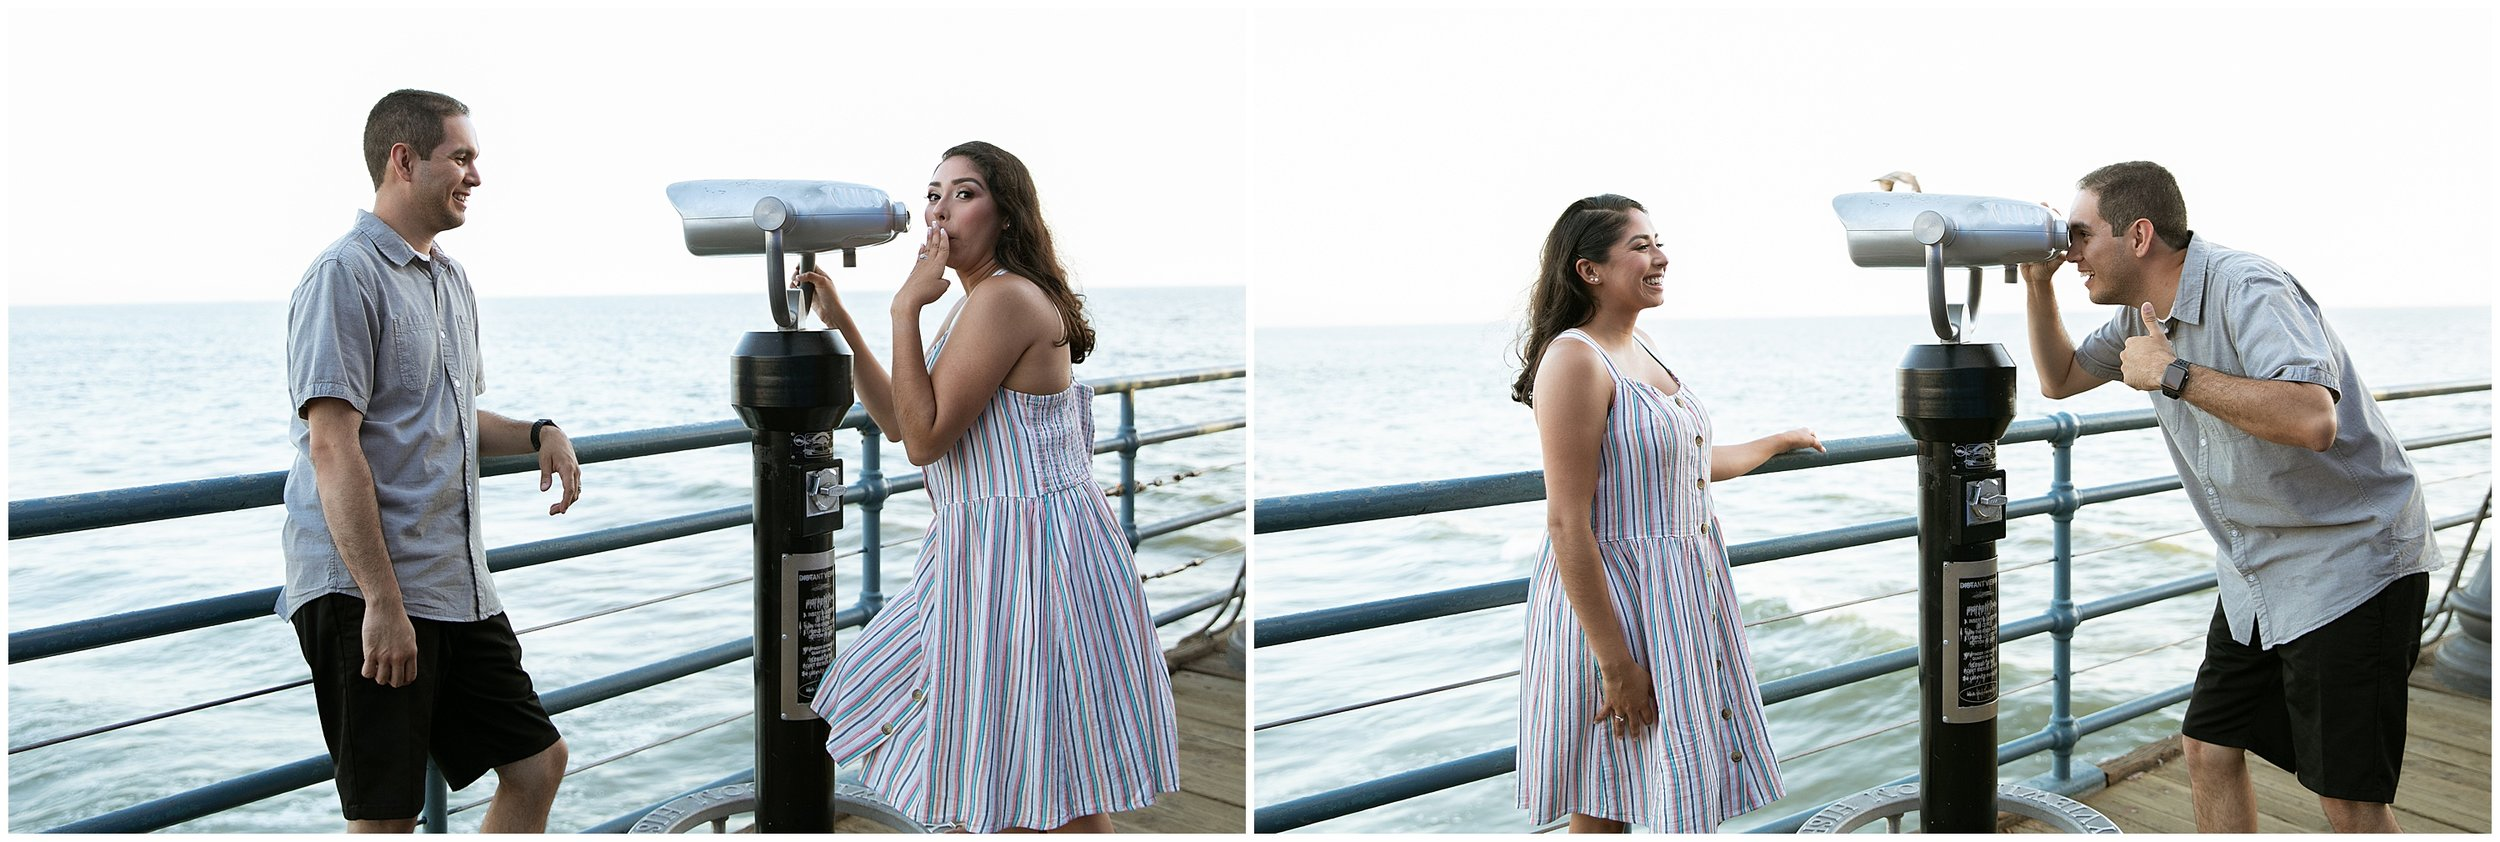 santa monica engagement-kellaphotography-laweddingphotographer_0042.jpg